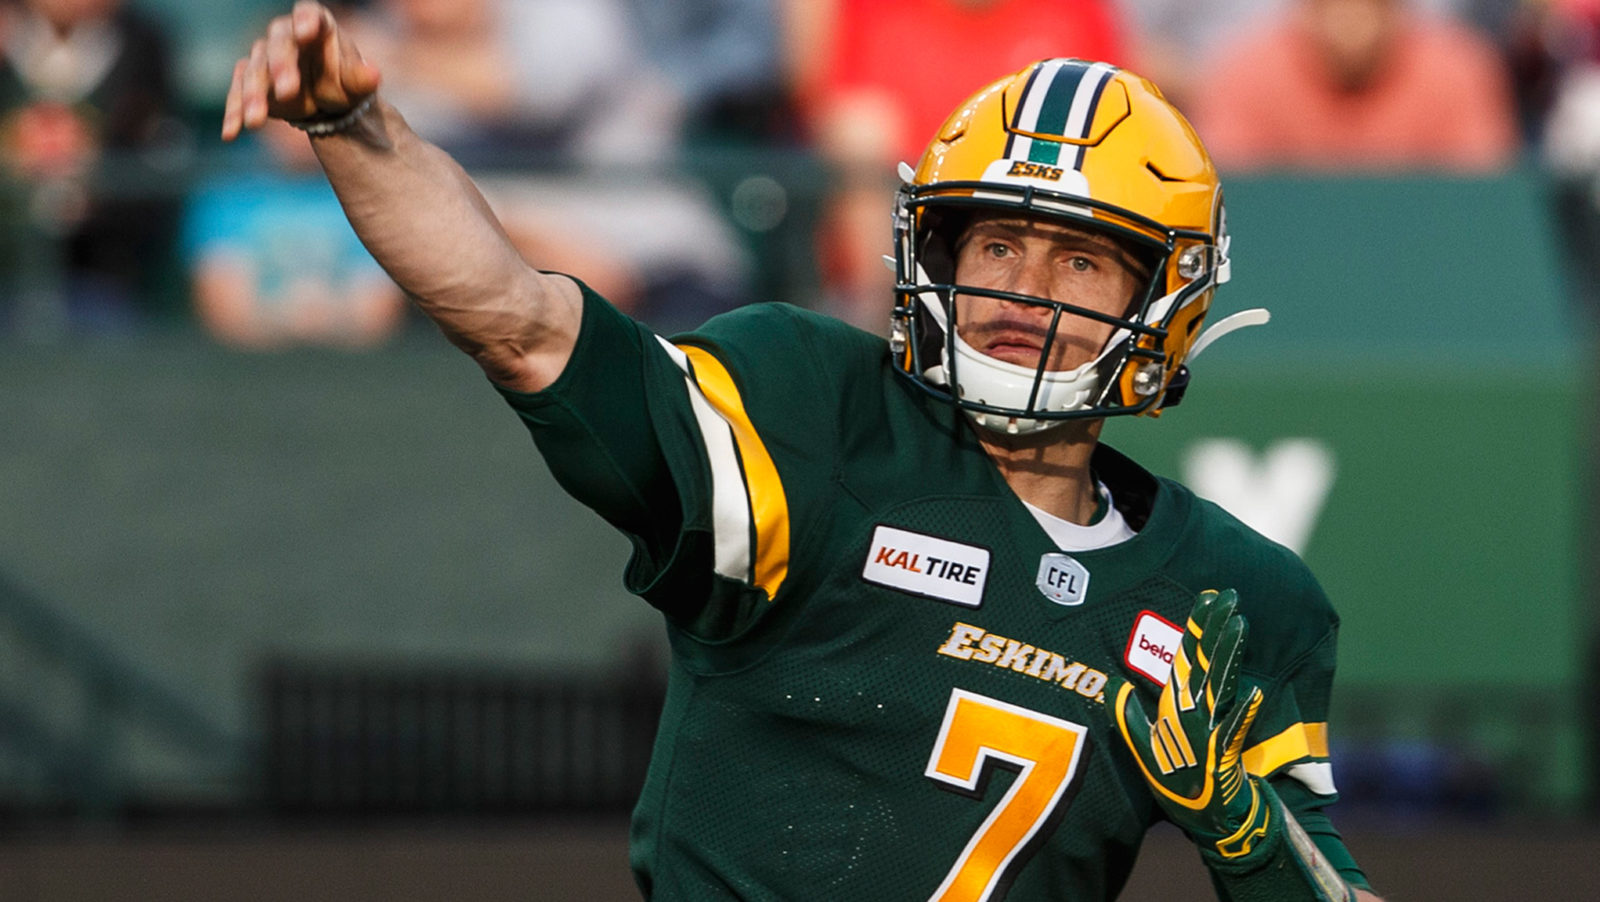 The Impossible Dream: Can Edmonton be the first?